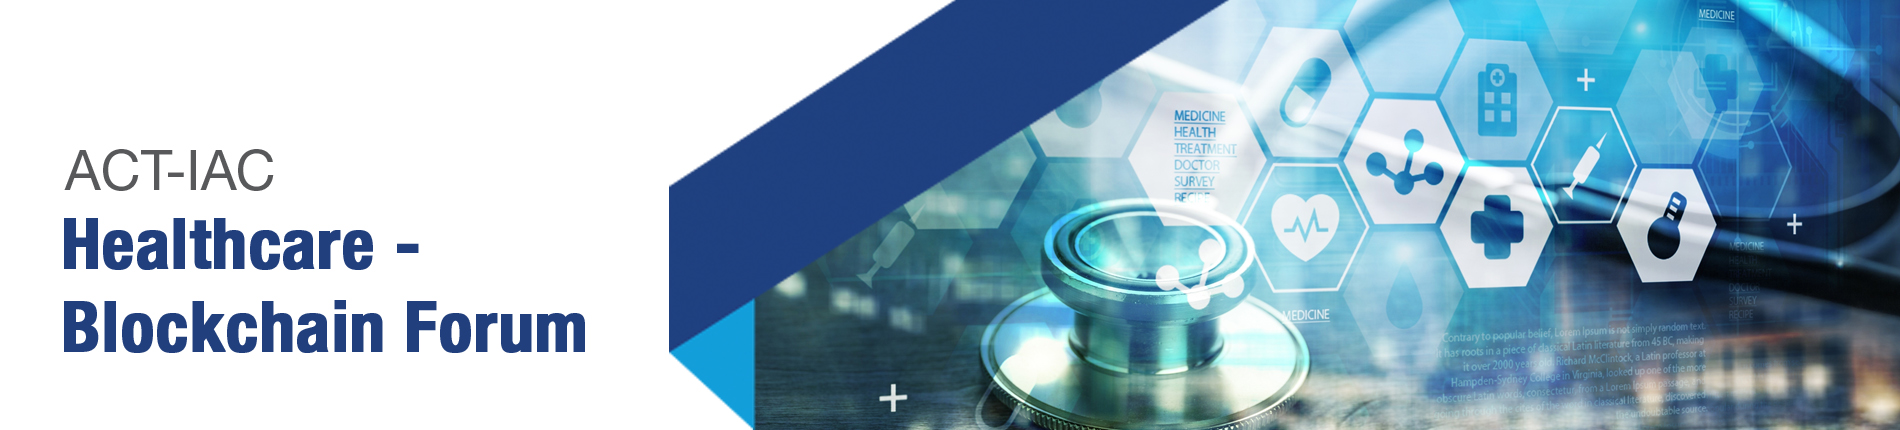 2019 HEALTHCARE - BLOCKCHAIN FORUM 3/28